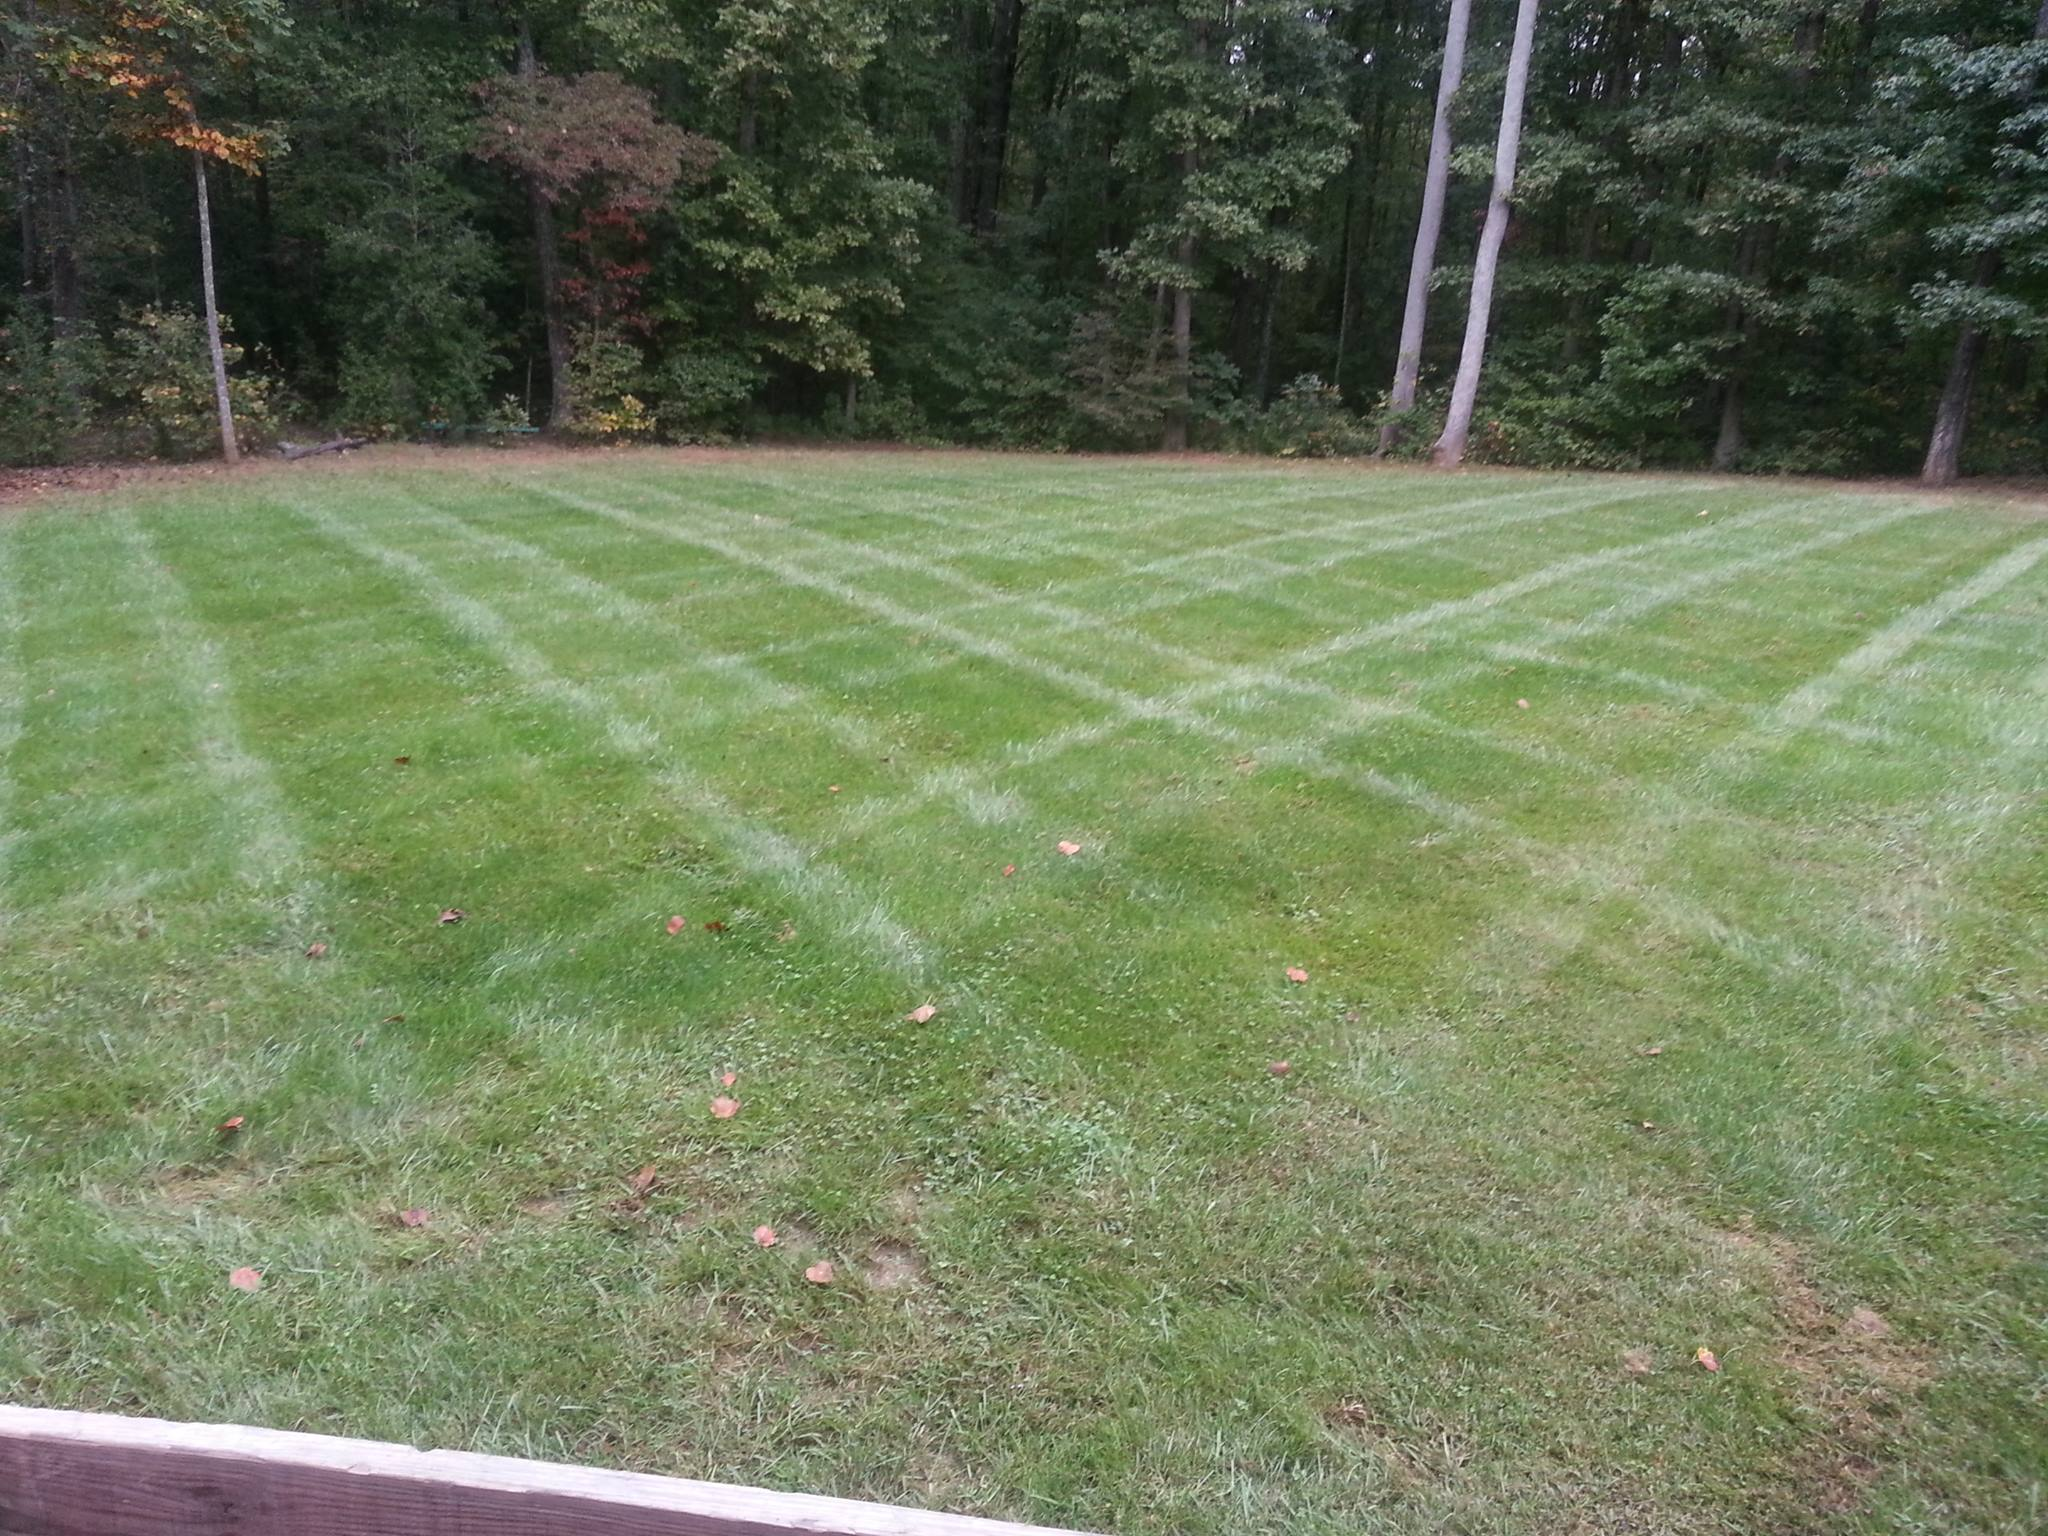 freshly mowed lawn with a criss cut pattern